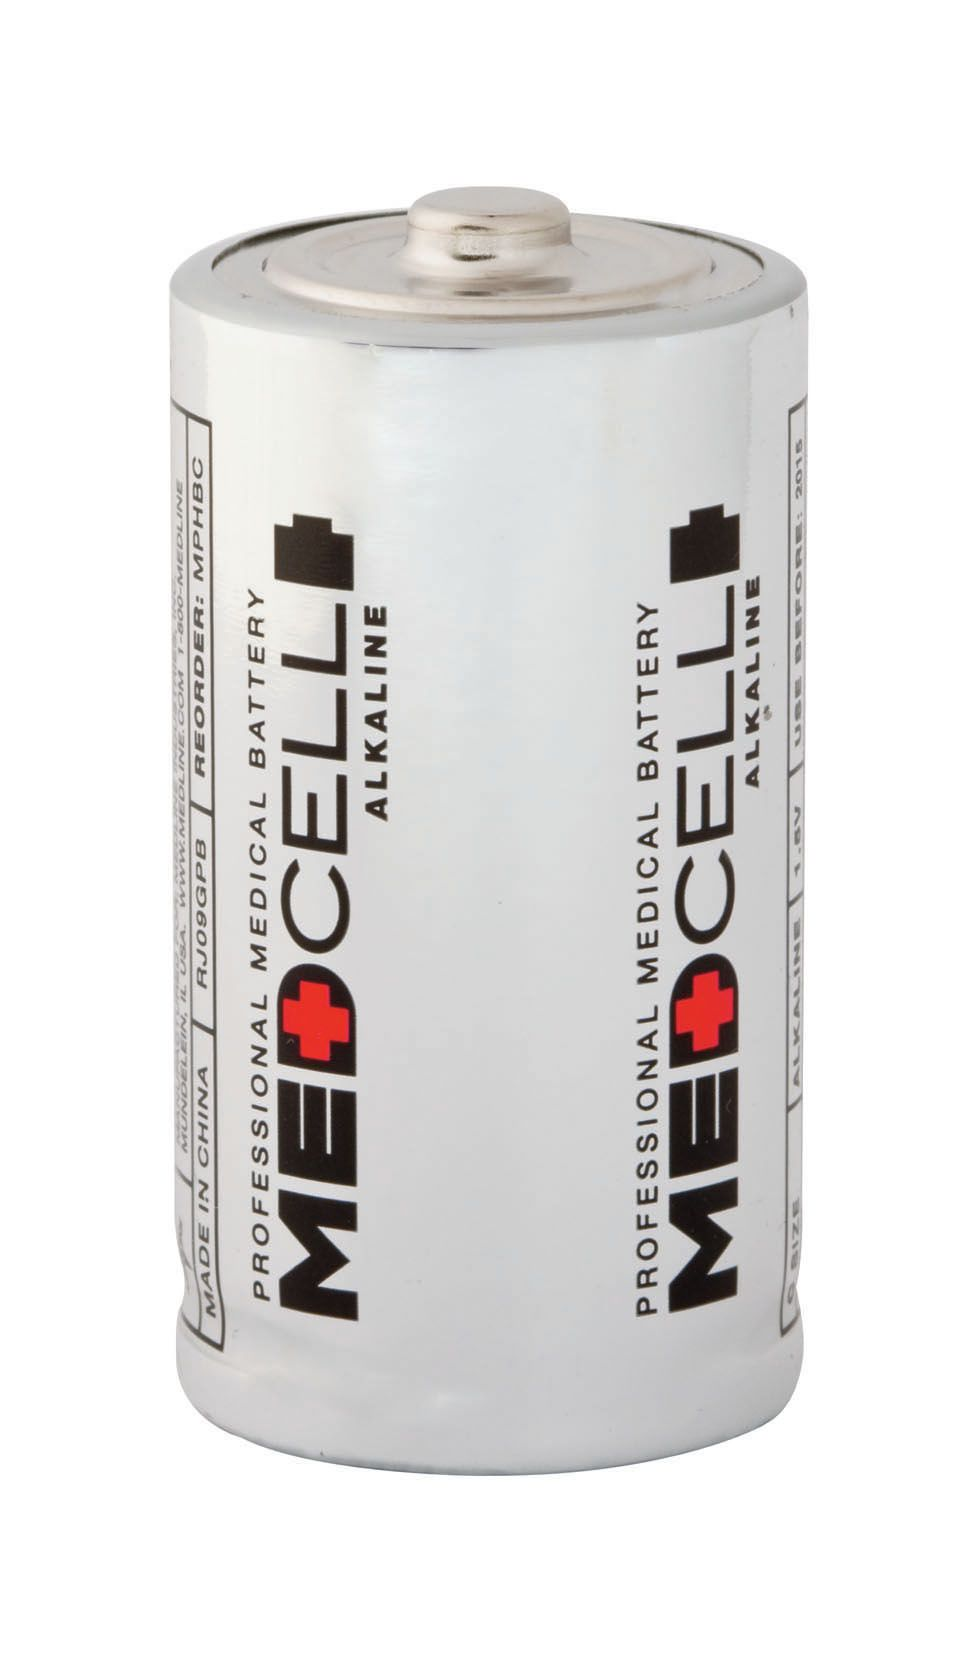 Medline MedCell Alkaline Battery - Battery, 1.5V, Each - Model MPHBD